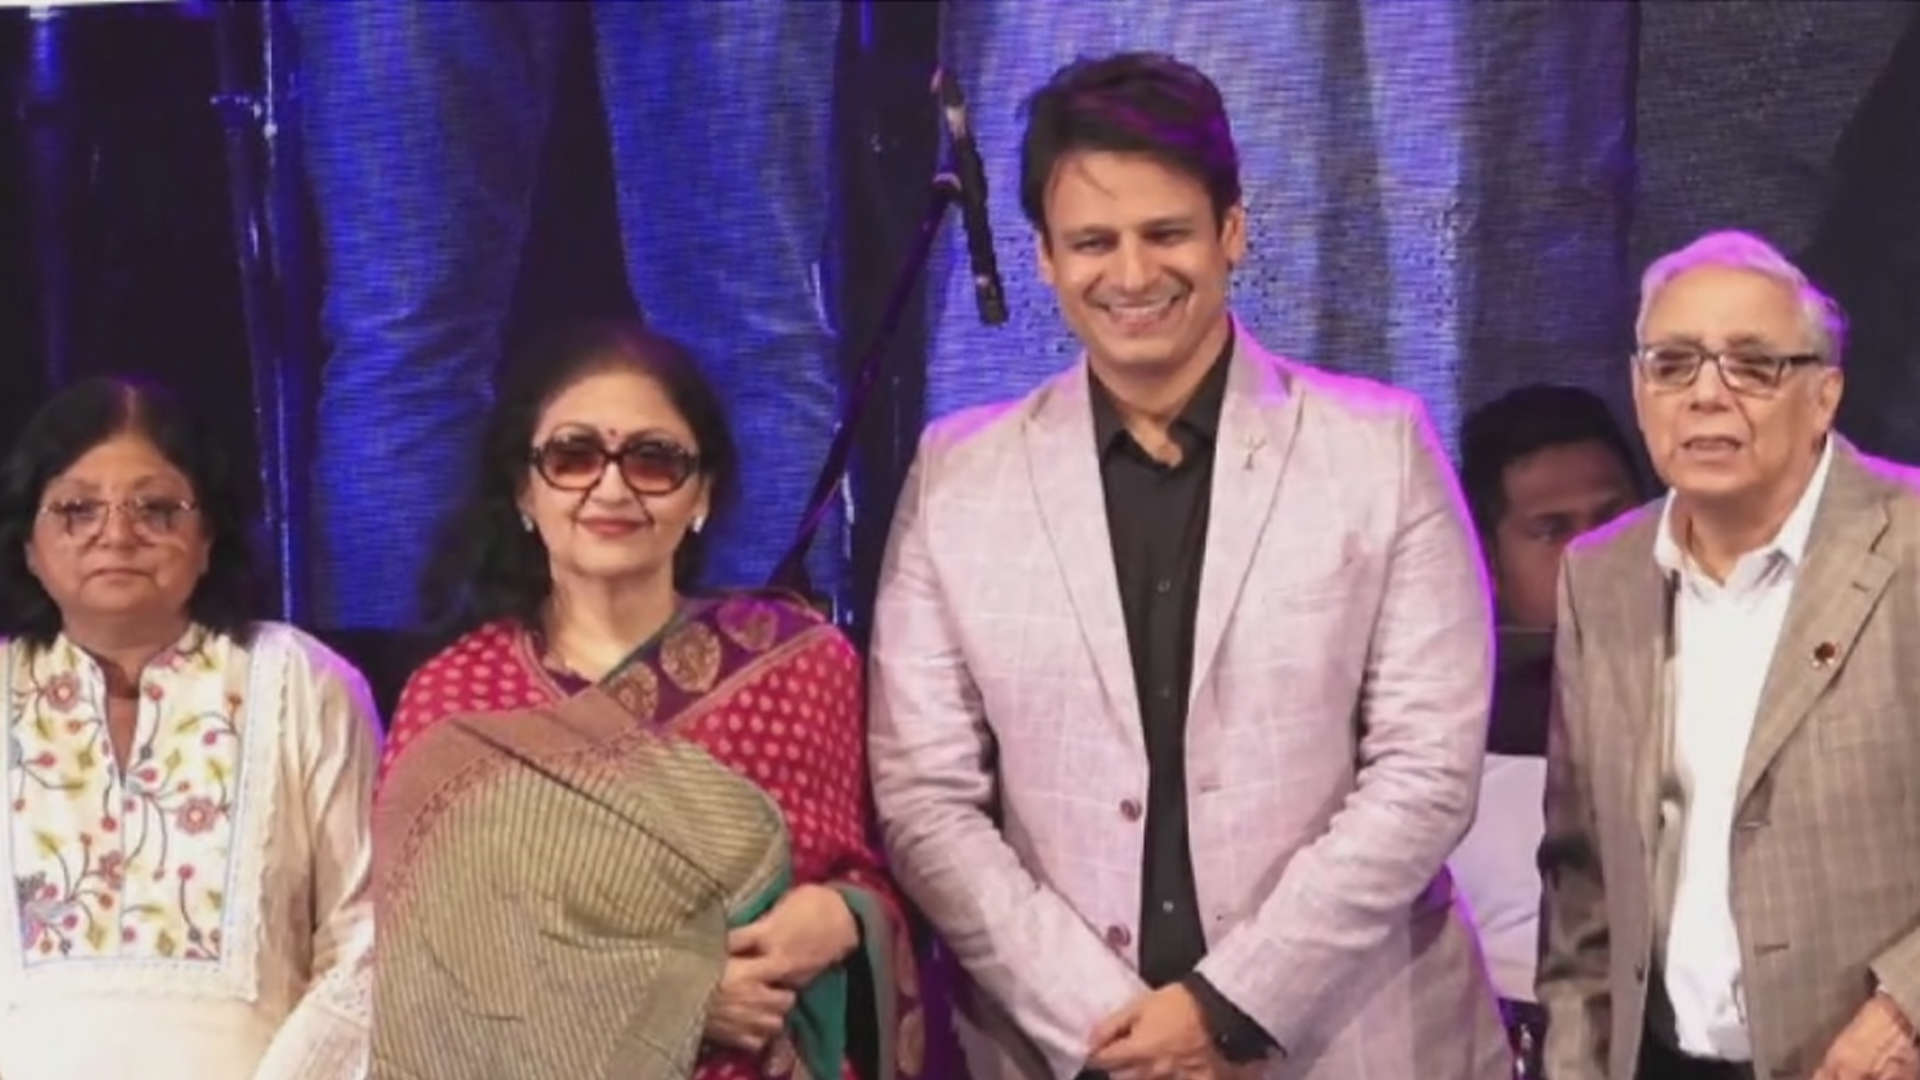 vivek-oberoi-attends-event-for-breast-cancer-awareness-in-mumbai